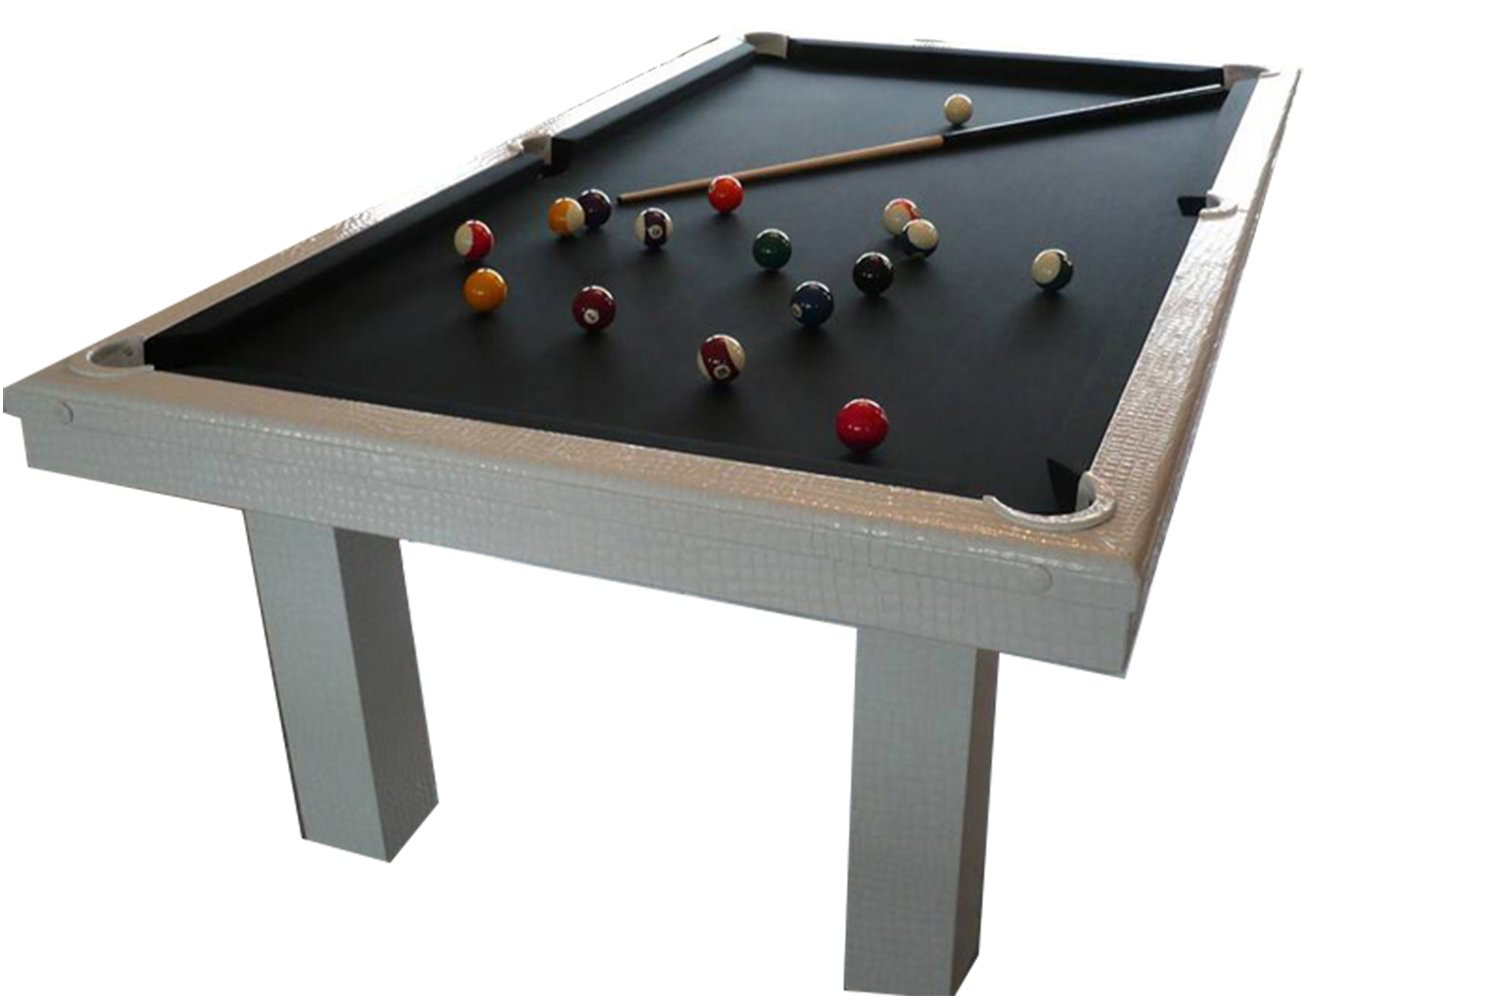 billard toulet leather pearl pool table 7 ft liberty games. Black Bedroom Furniture Sets. Home Design Ideas